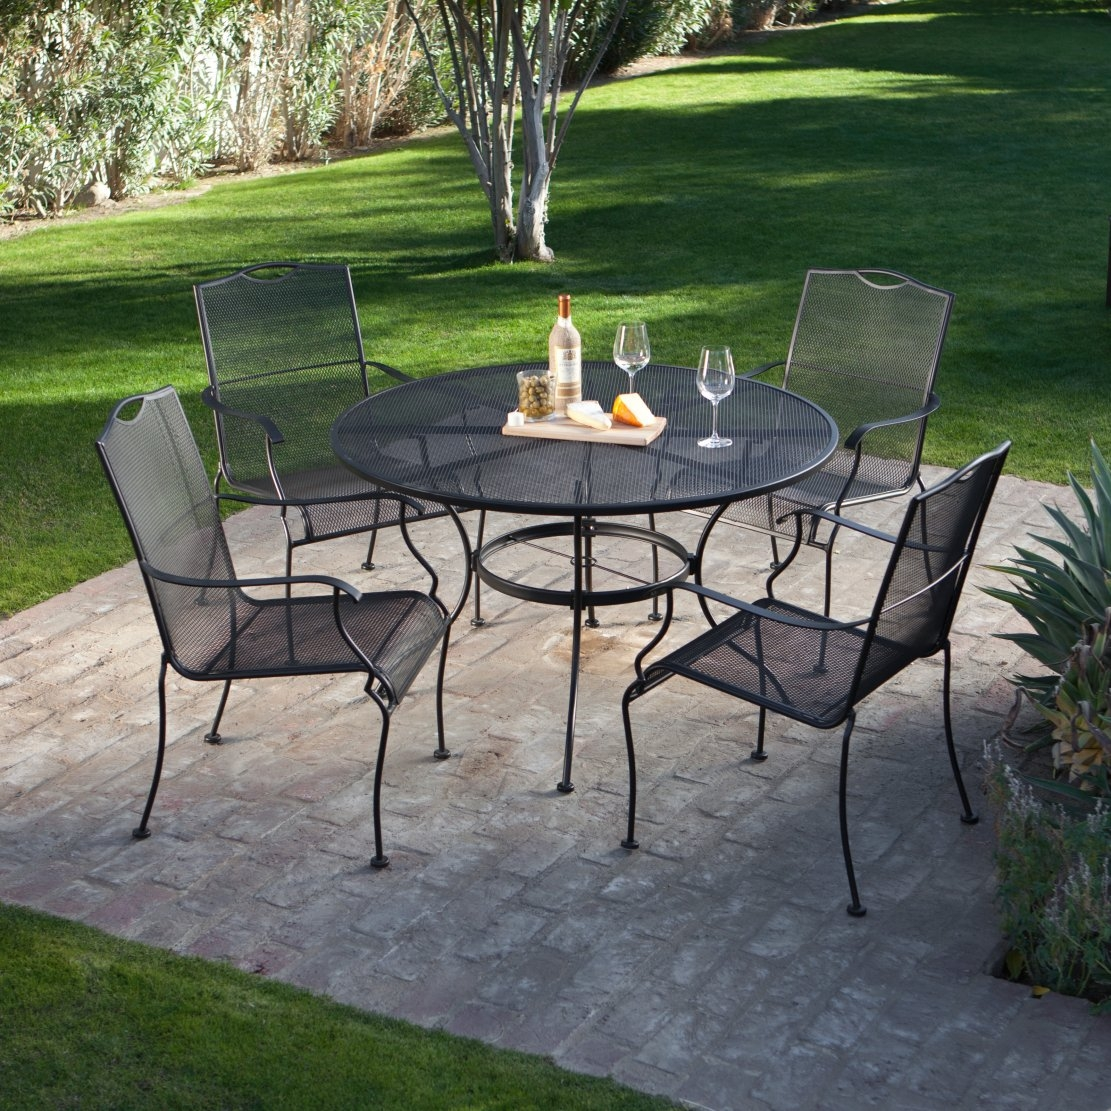 5 Piece Wrought Iron Patio Furniture Dining Set Seats 4 Fastfurnishings